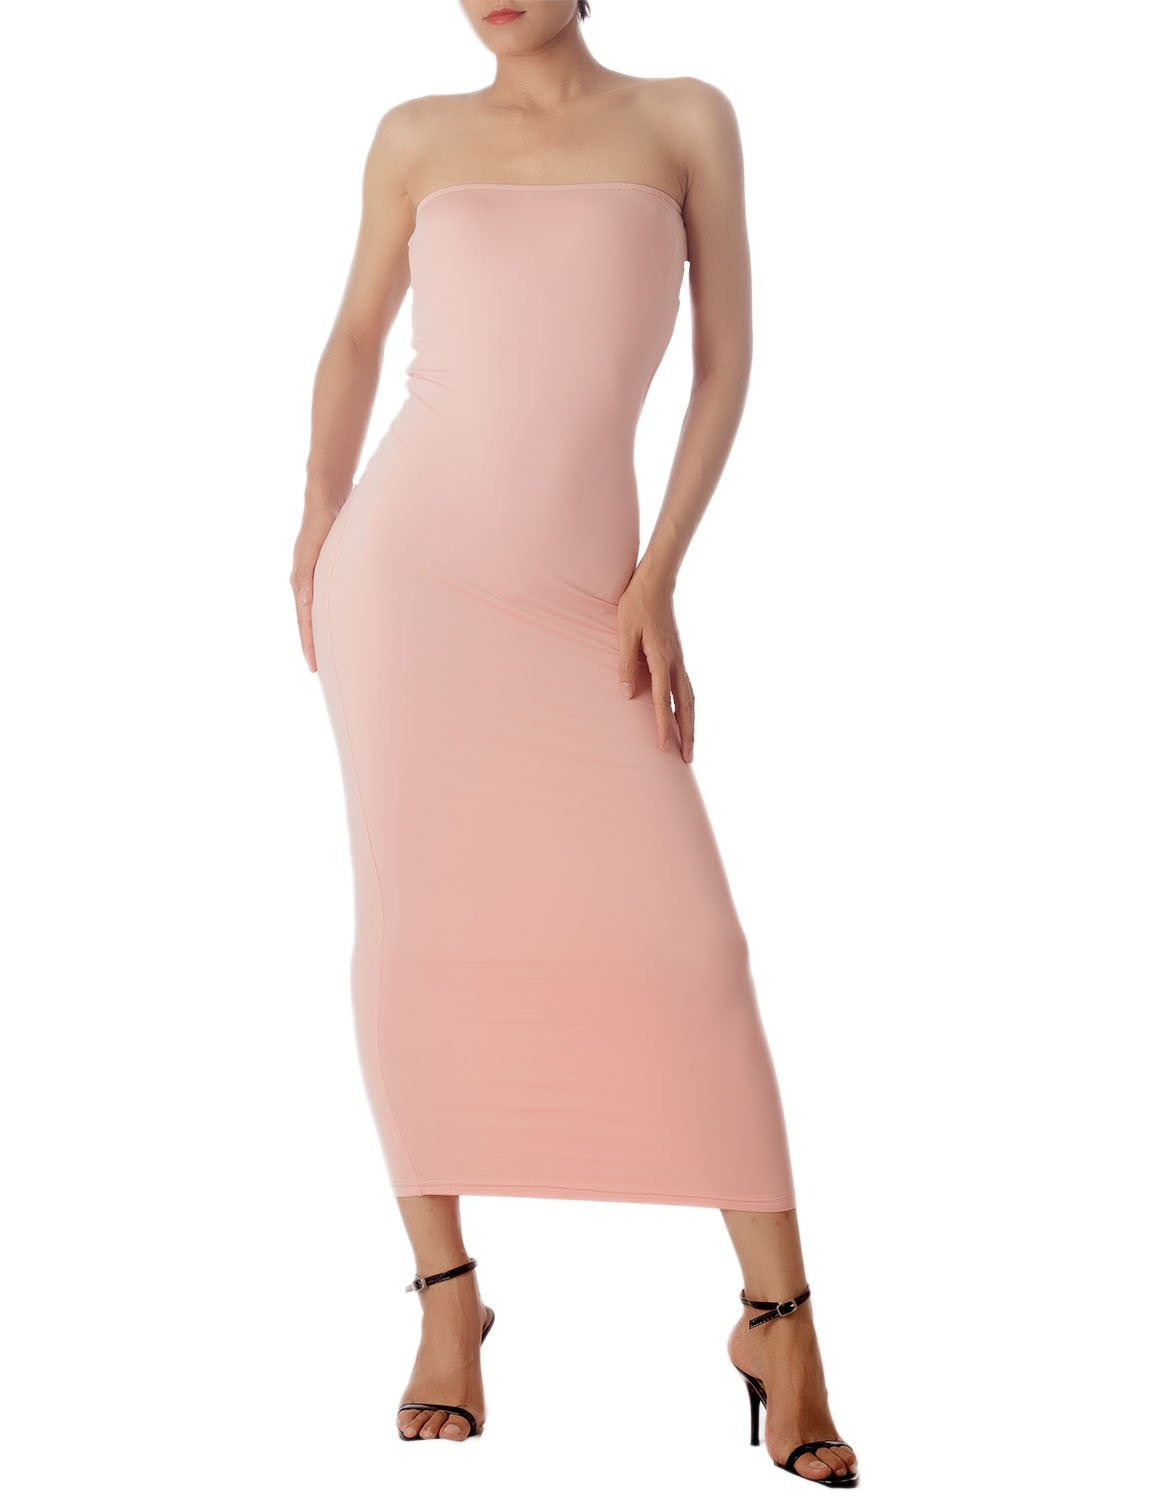 Women's Casual Sleeveless Stretch Tube Pencil Bodycon Long Strapless Dress, Size: XL, Light Pink